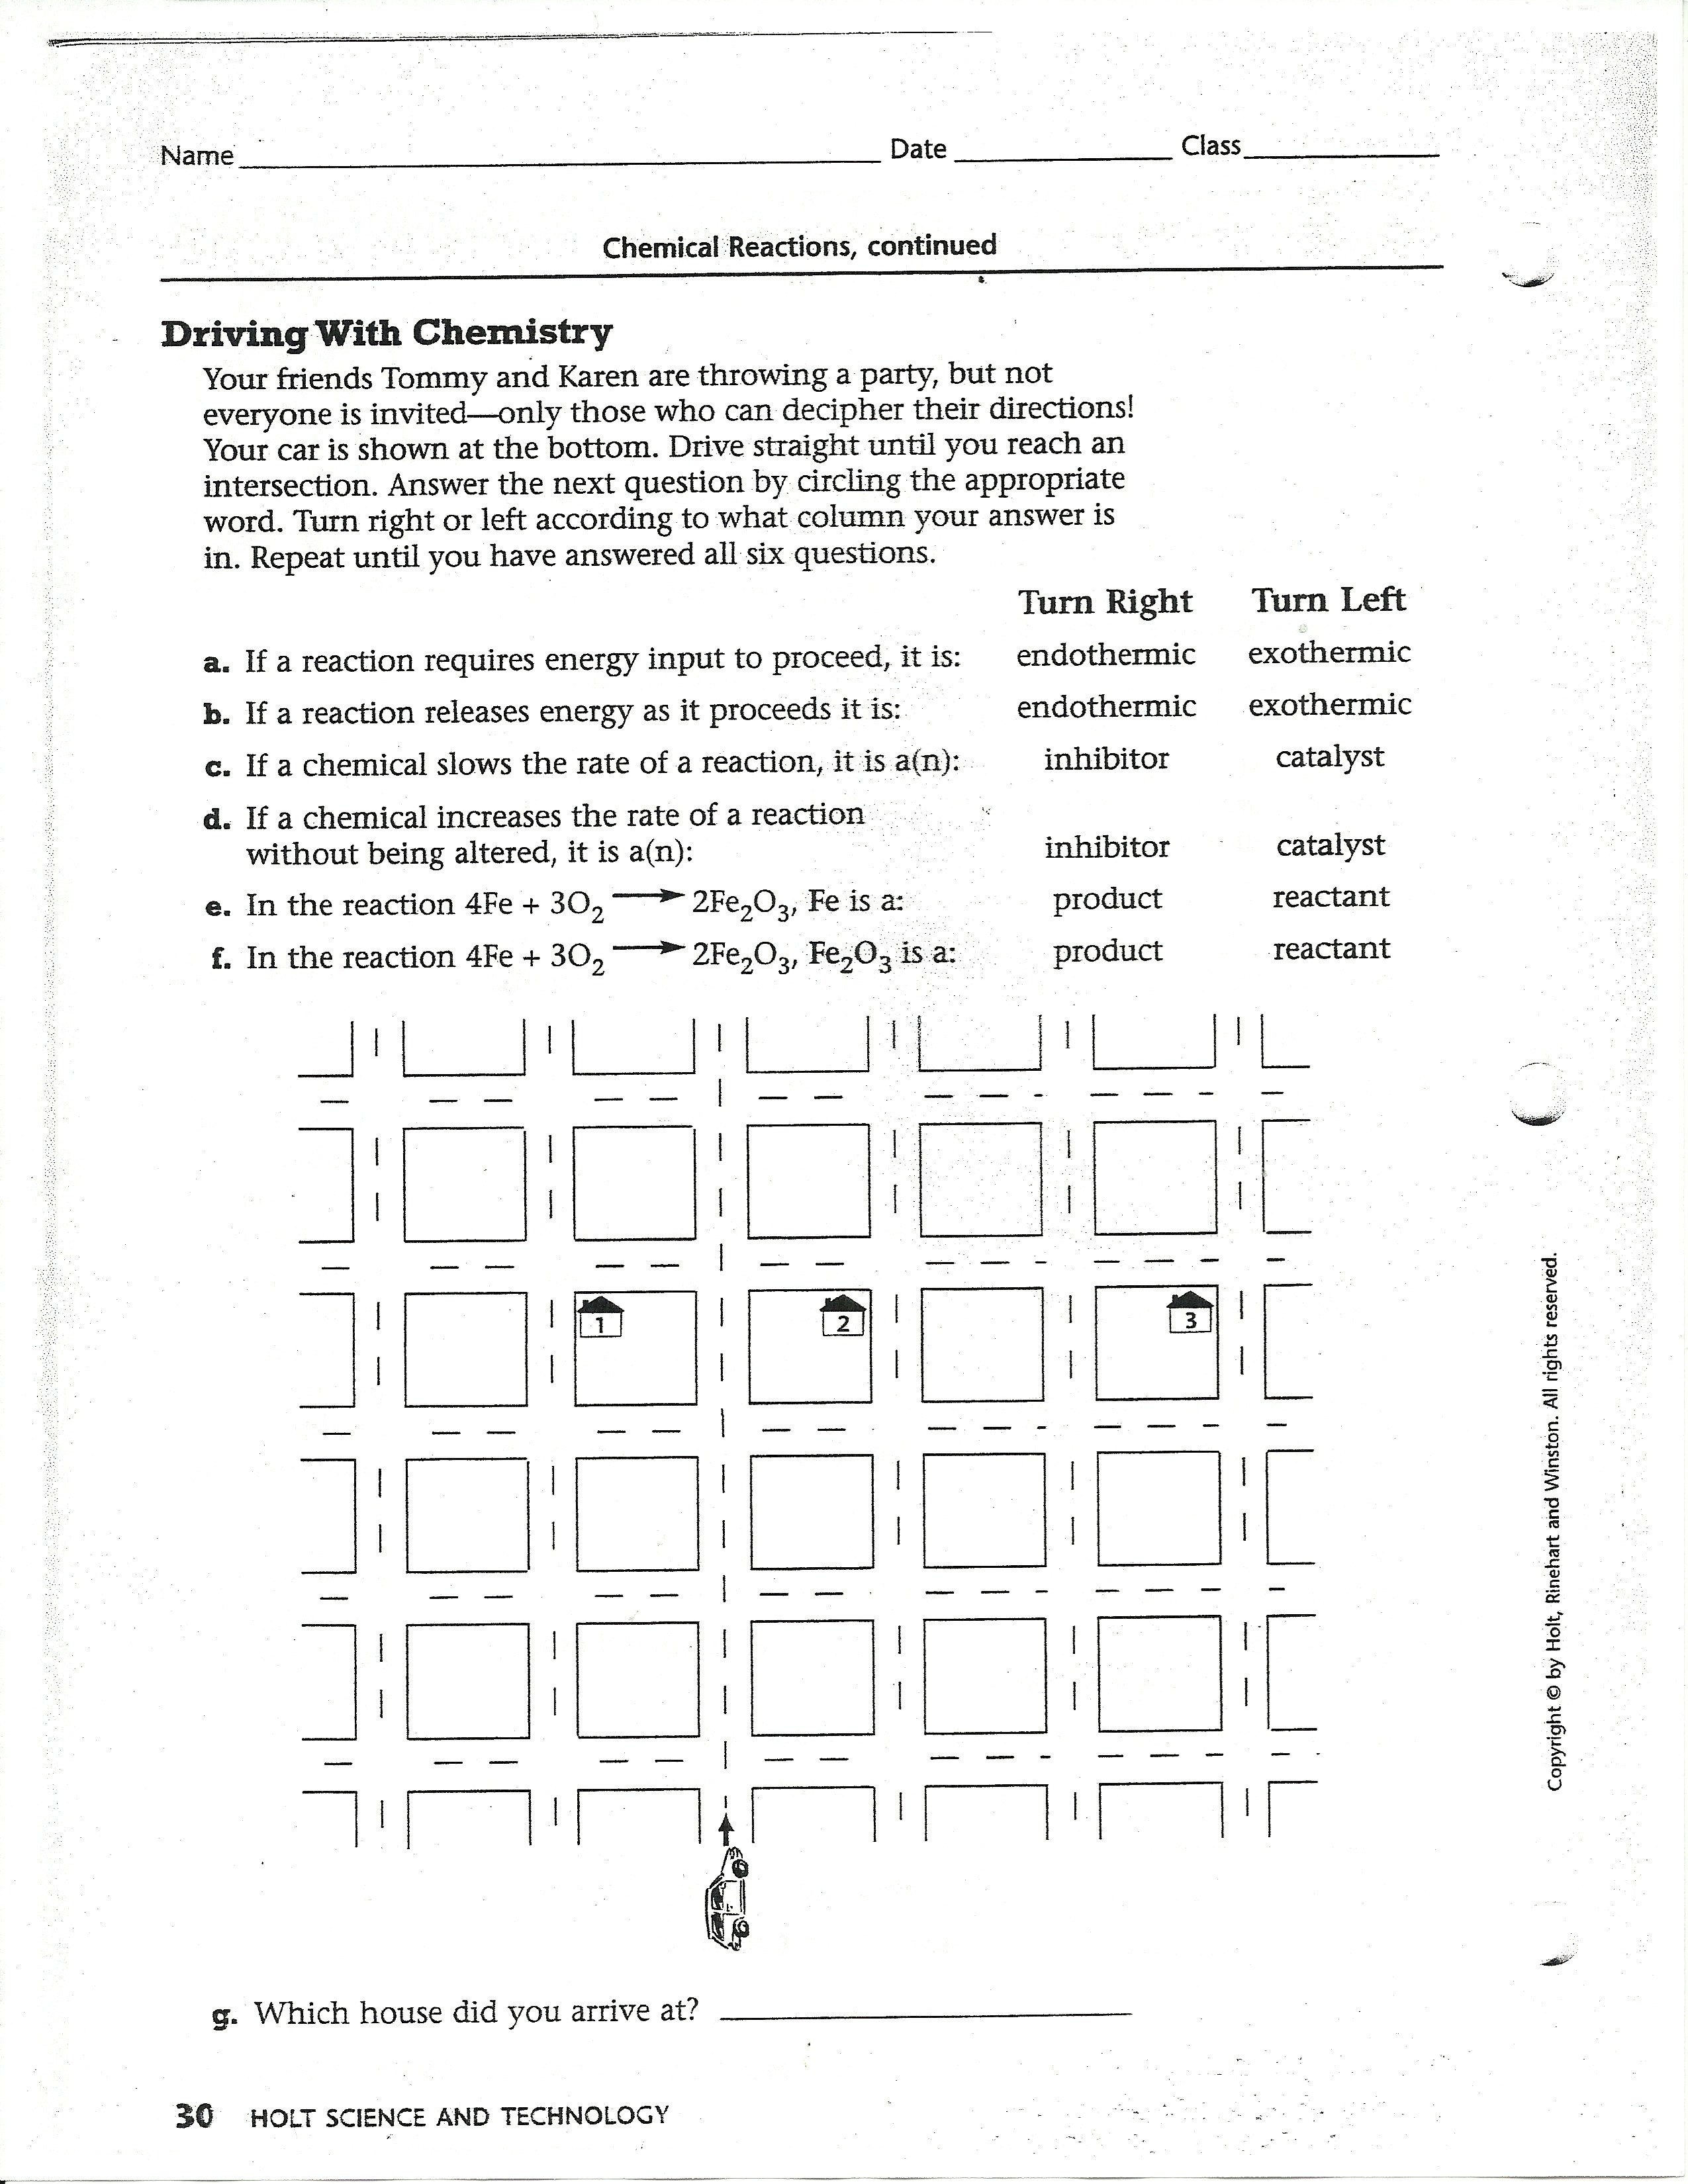 Section Holt Science And Technology Worksheet Answers